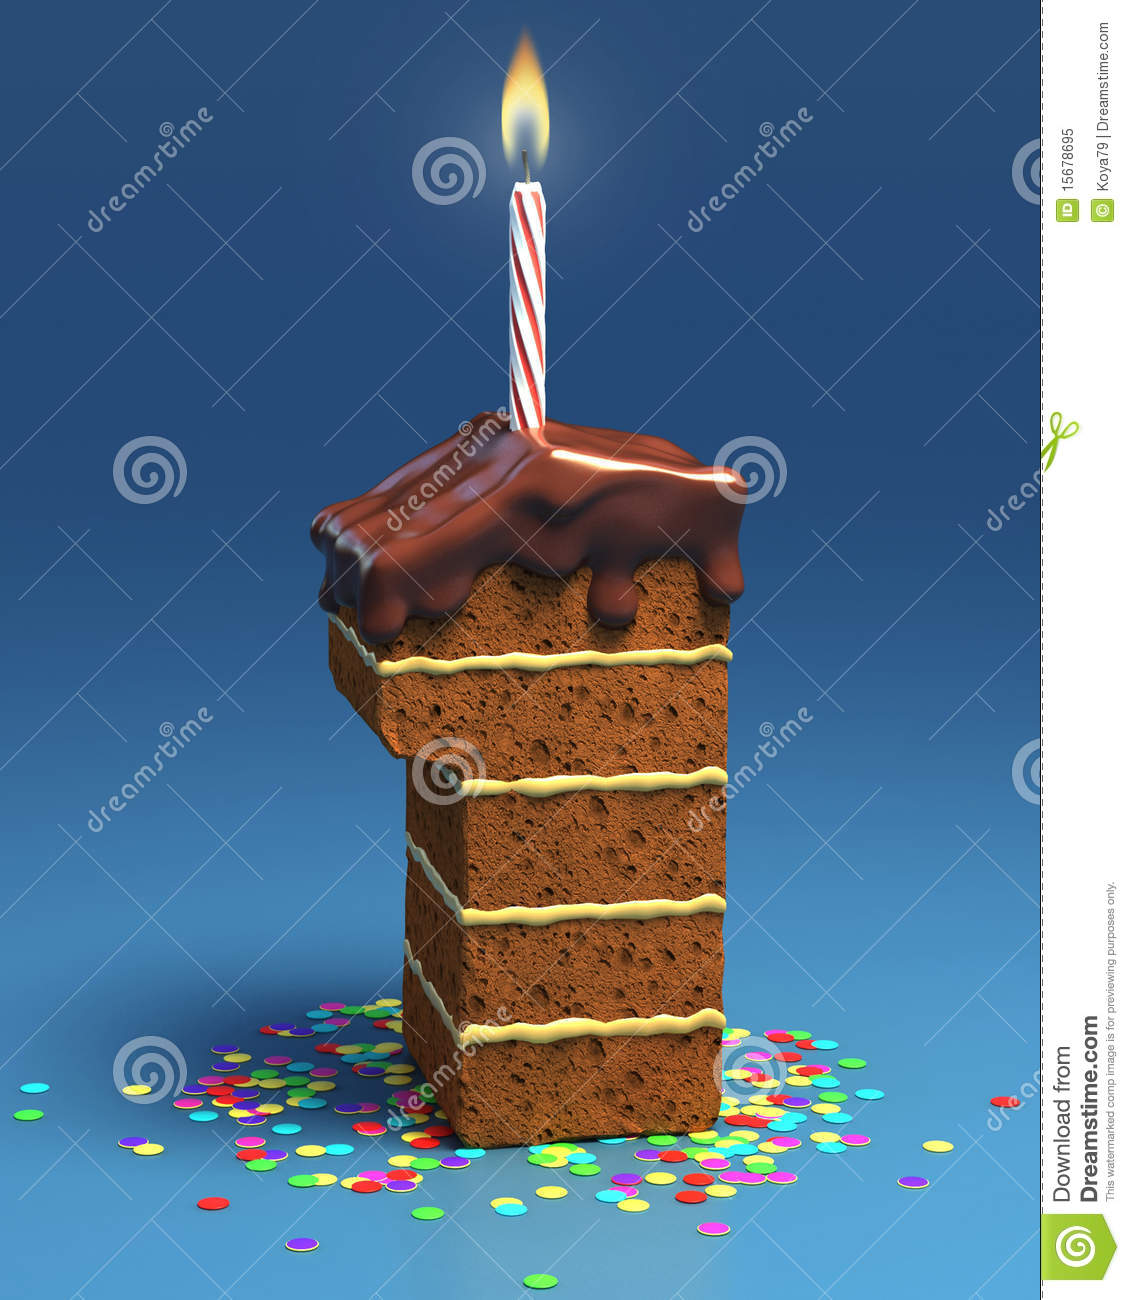 Number One Shaped Birthday Cake With Candle Royalty Free